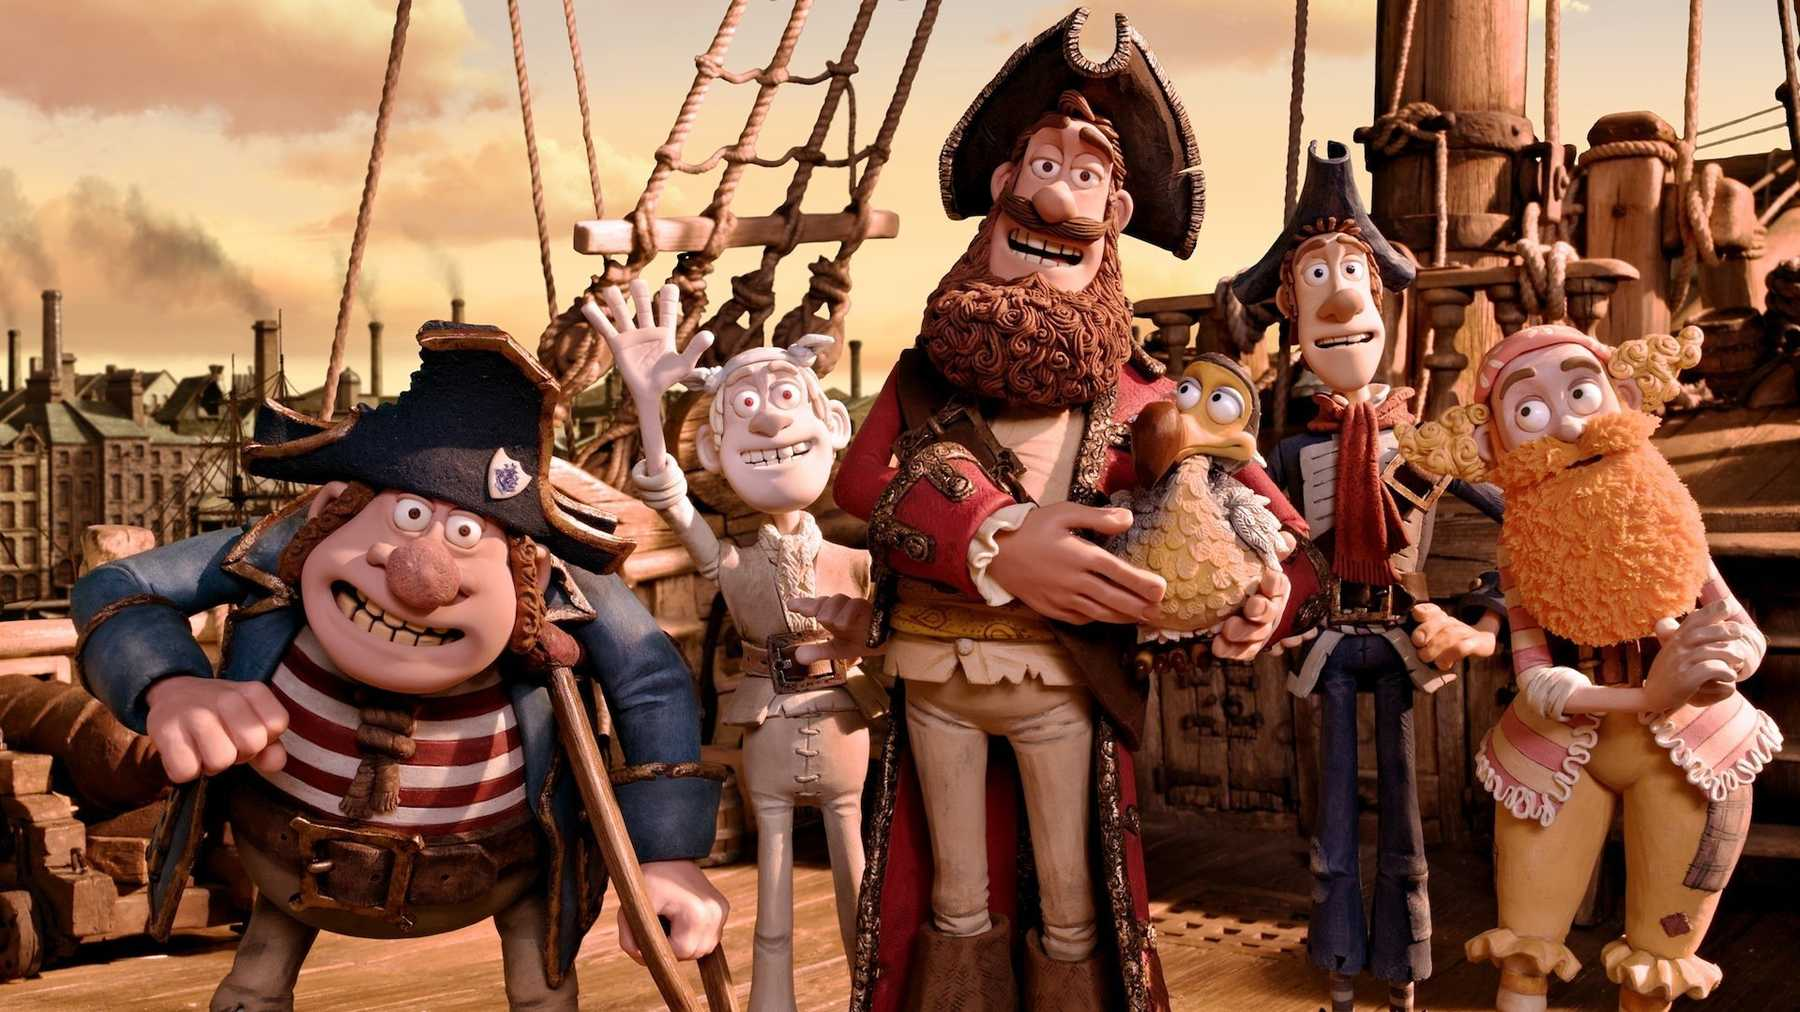 The Pirates! In an Adventure with Scientists!  (Peter Lord, 2012).